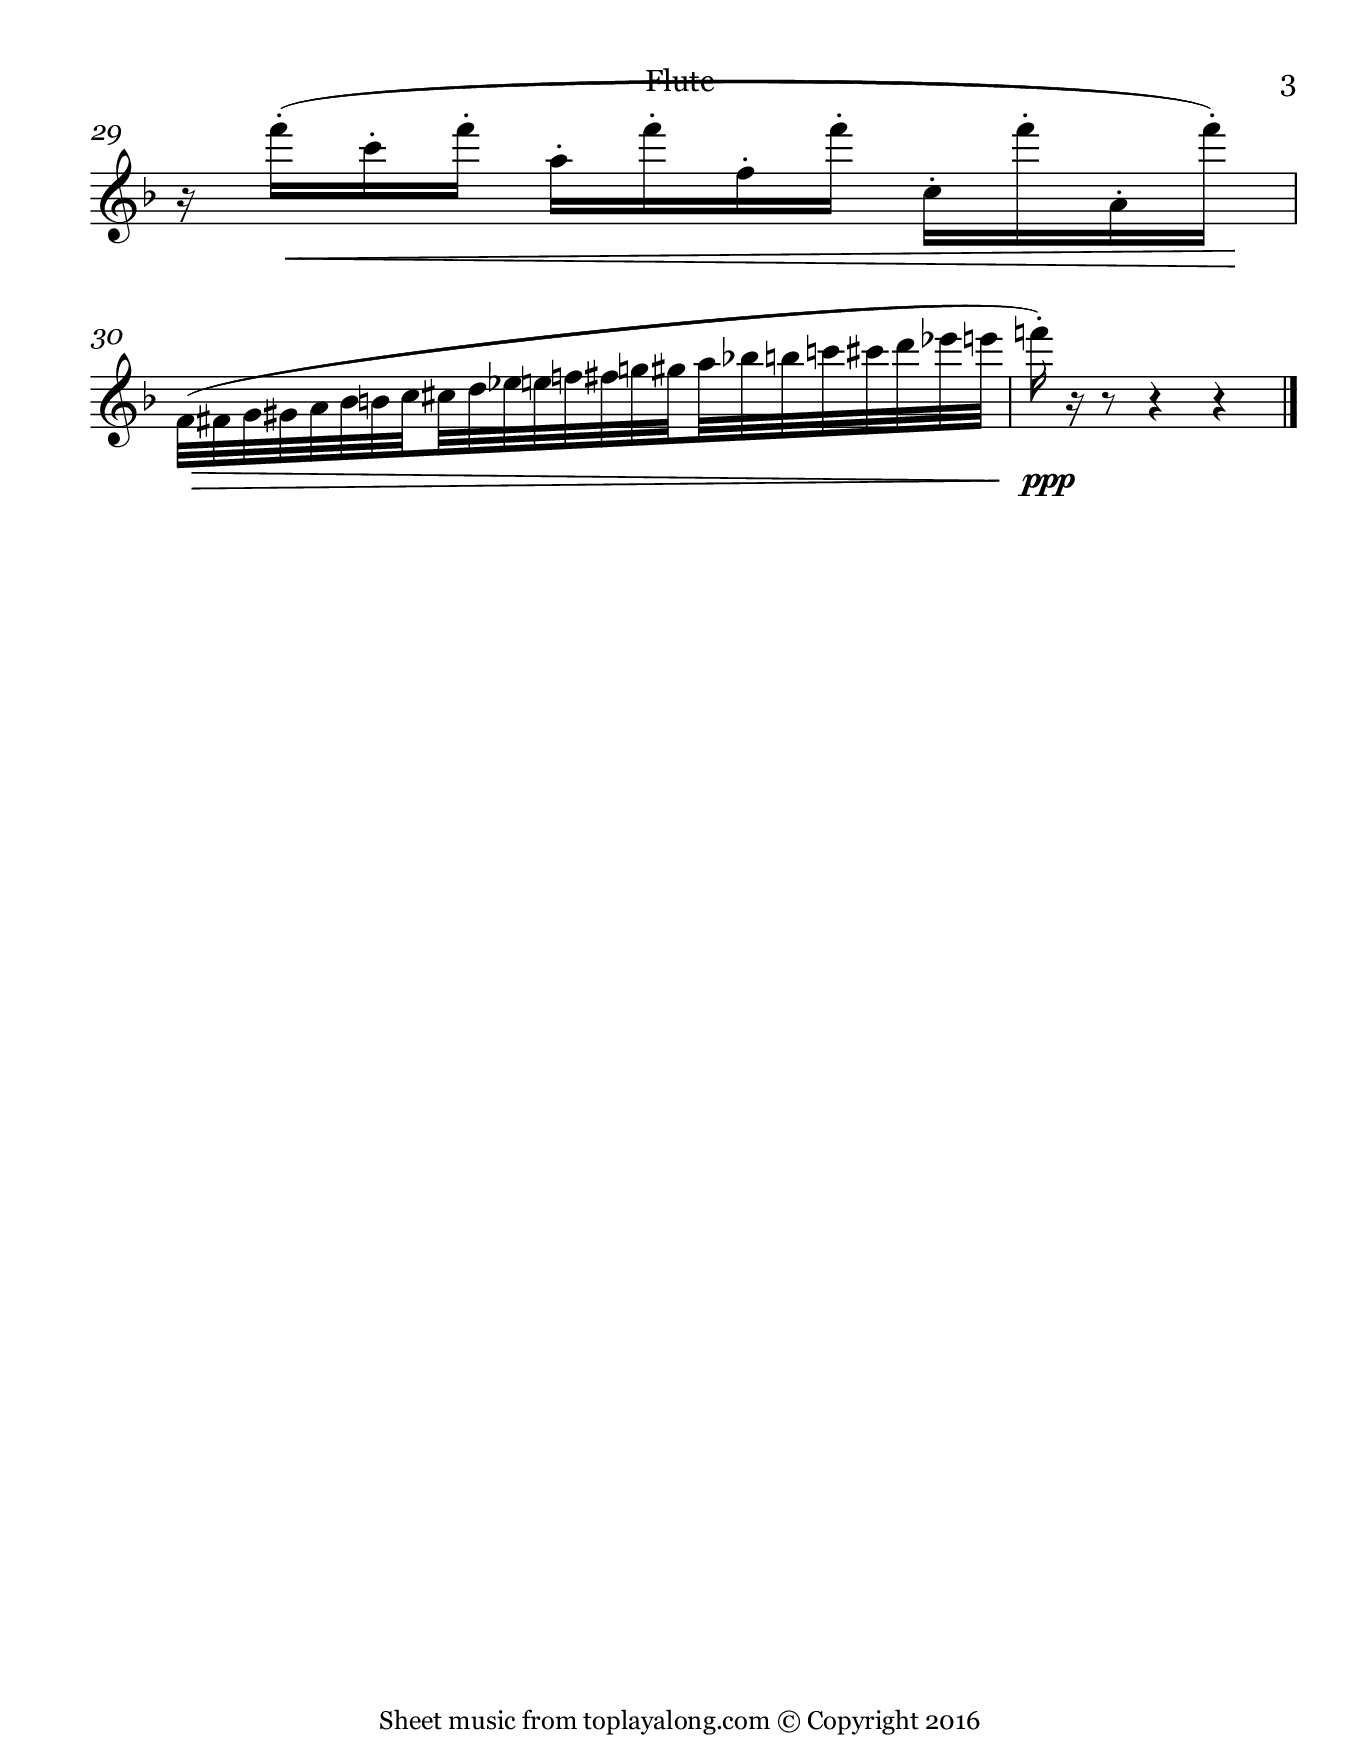 Volière (Aviary) from The Carnival of the Animals by Saint-Saëns. Sheet music for Flute, page 3.